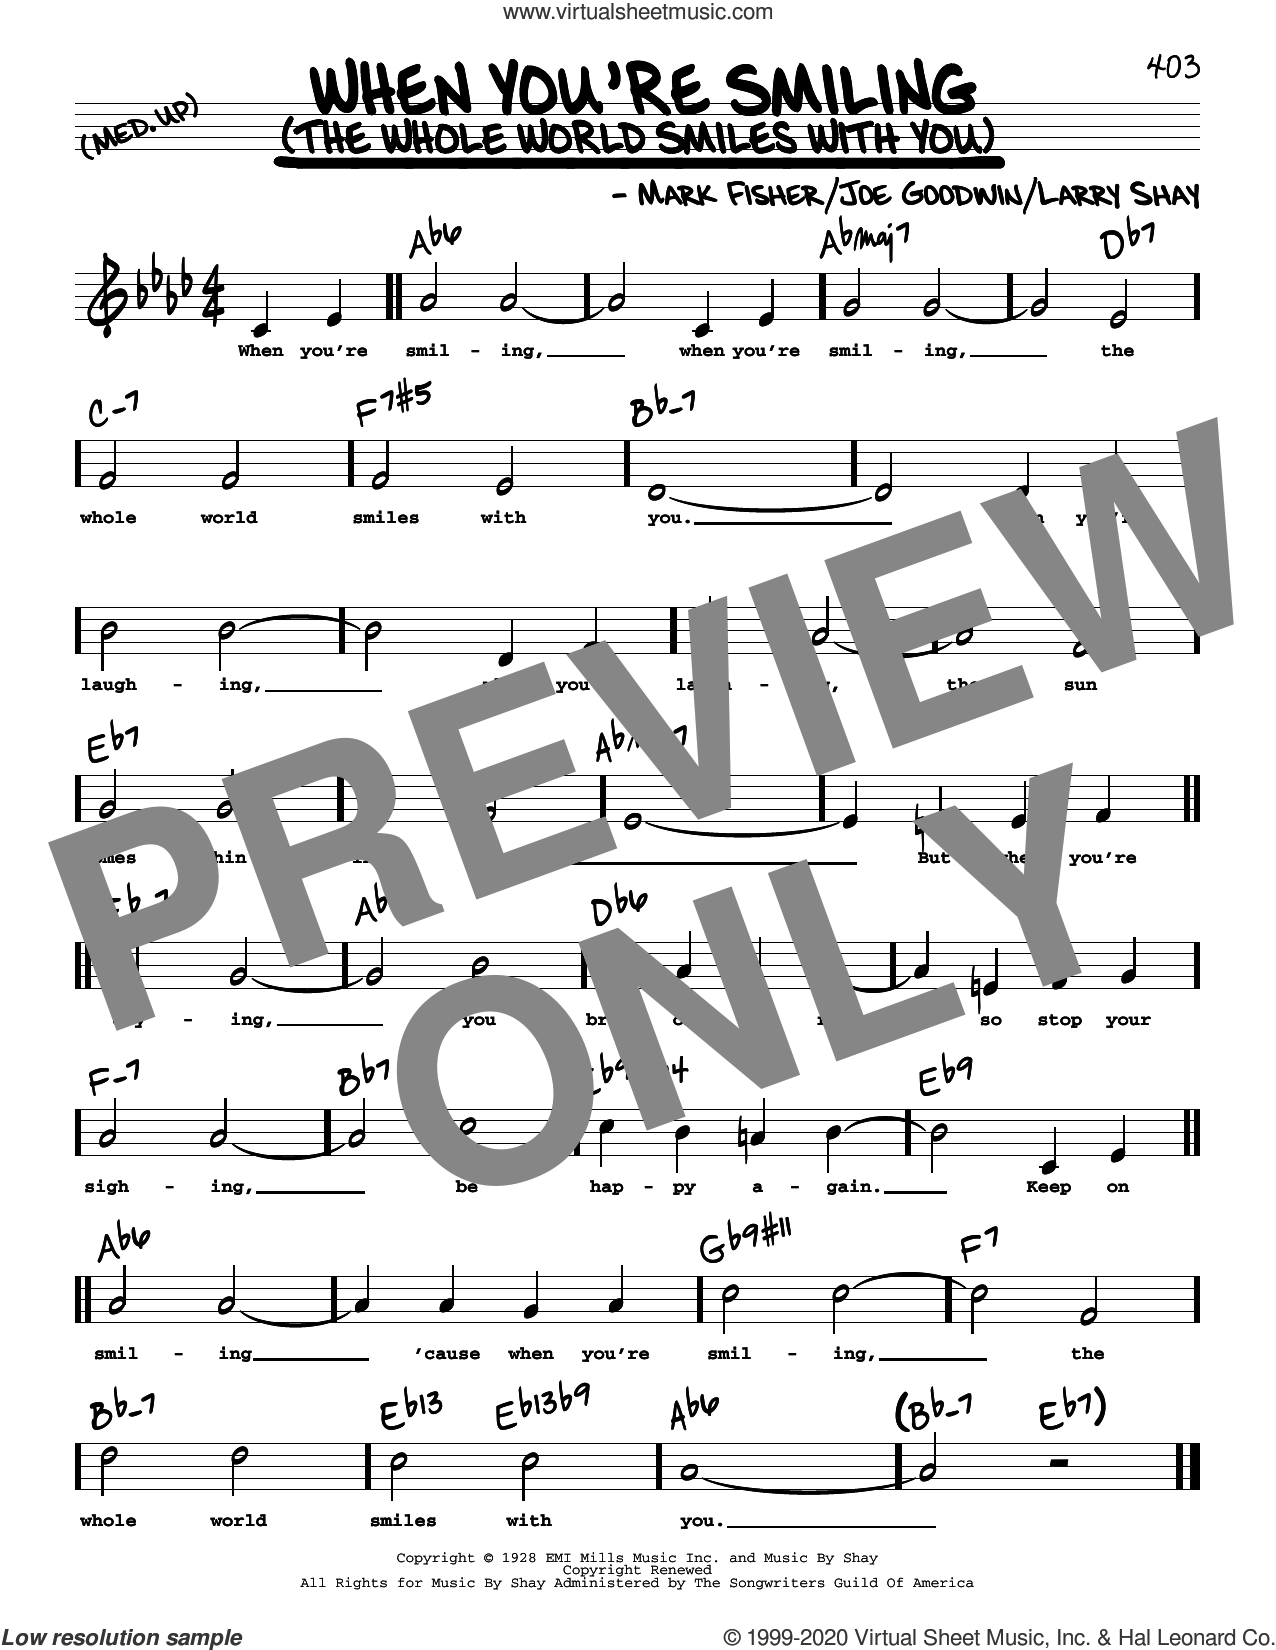 When You're Smiling (The Whole World Smiles With You) (High Voice) sheet music for voice and other instruments (high voice) by Joe Goodwin, Larry Shay and Mark Fisher, intermediate skill level